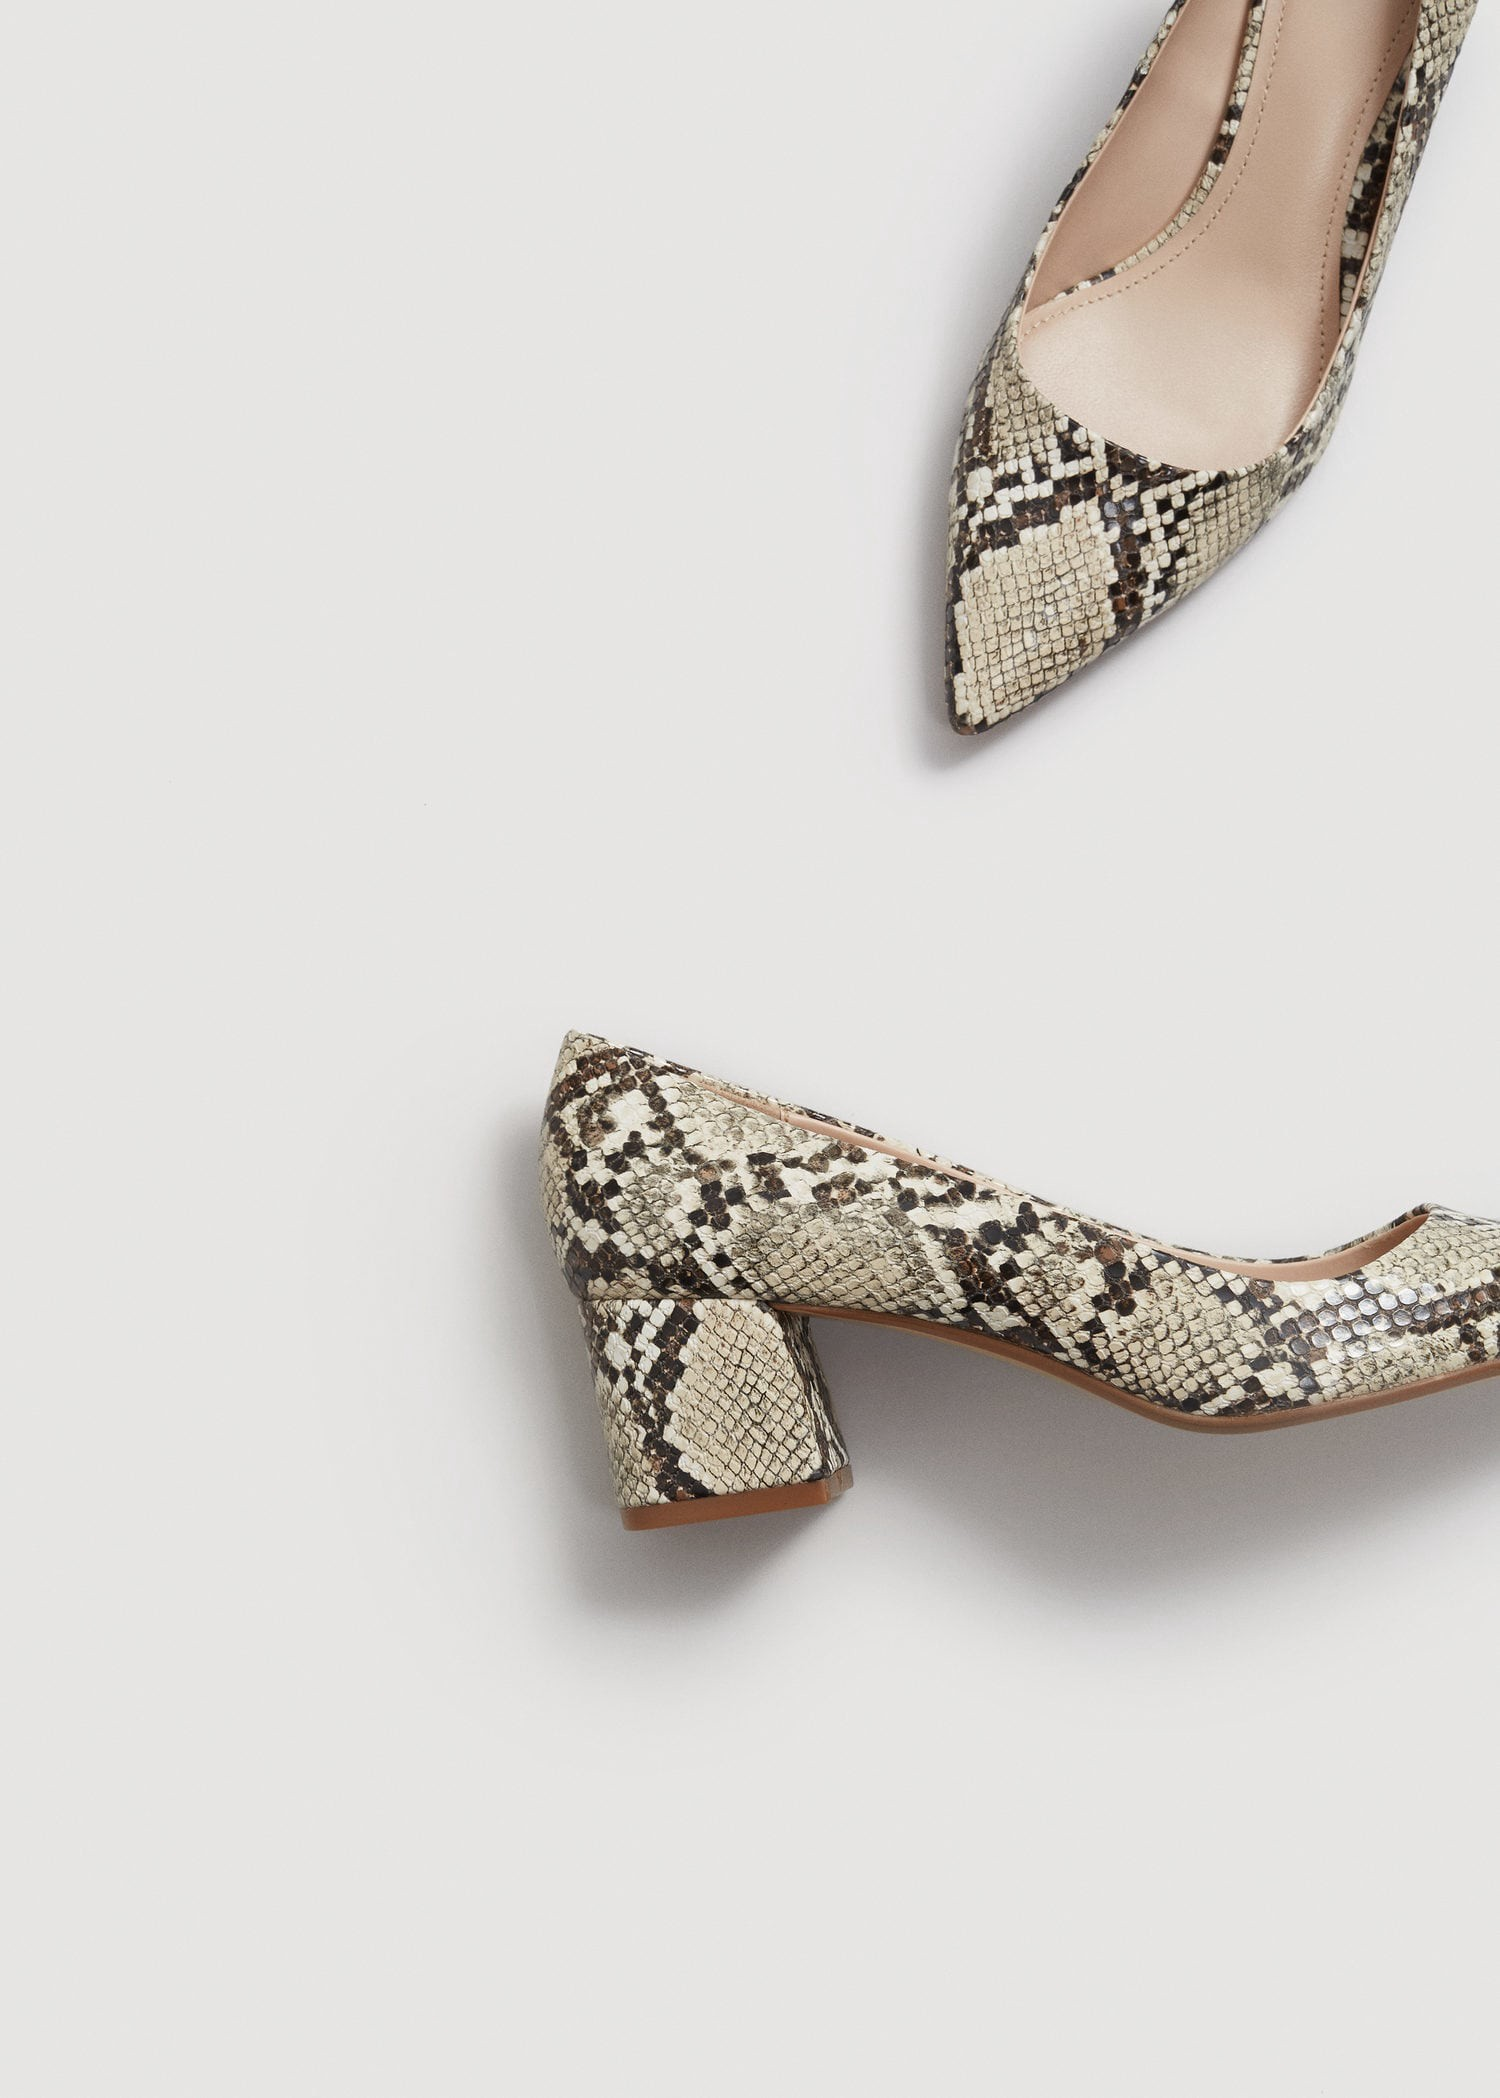 290a0600c5 Mango Snakeskin Print Heeled Shoes - 7½ | Products | Shoes, Shoes ...